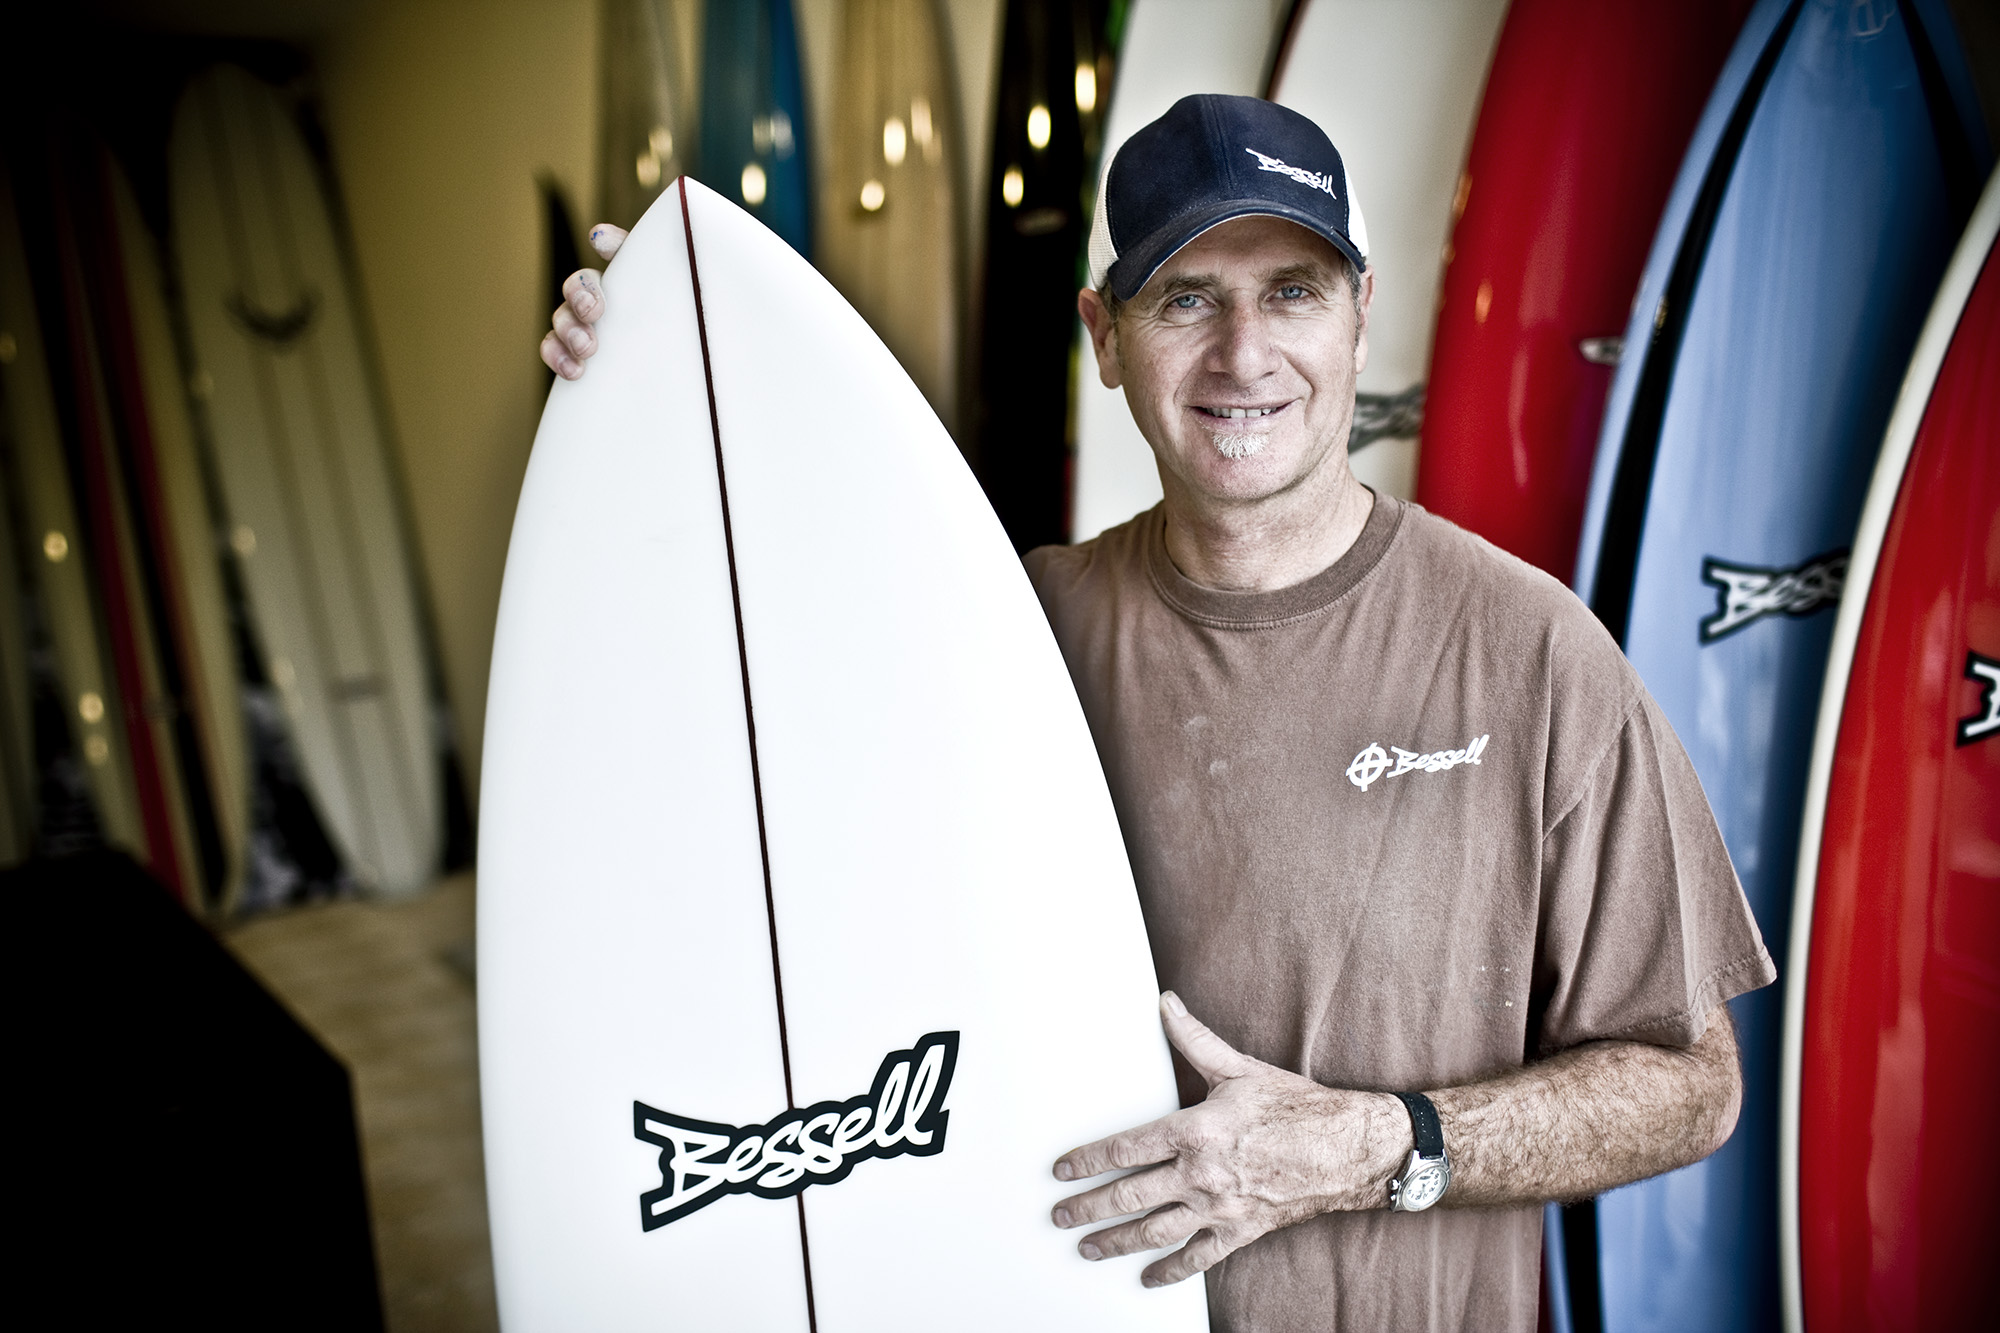 Tim Bessell_Local Surfboard Shapers